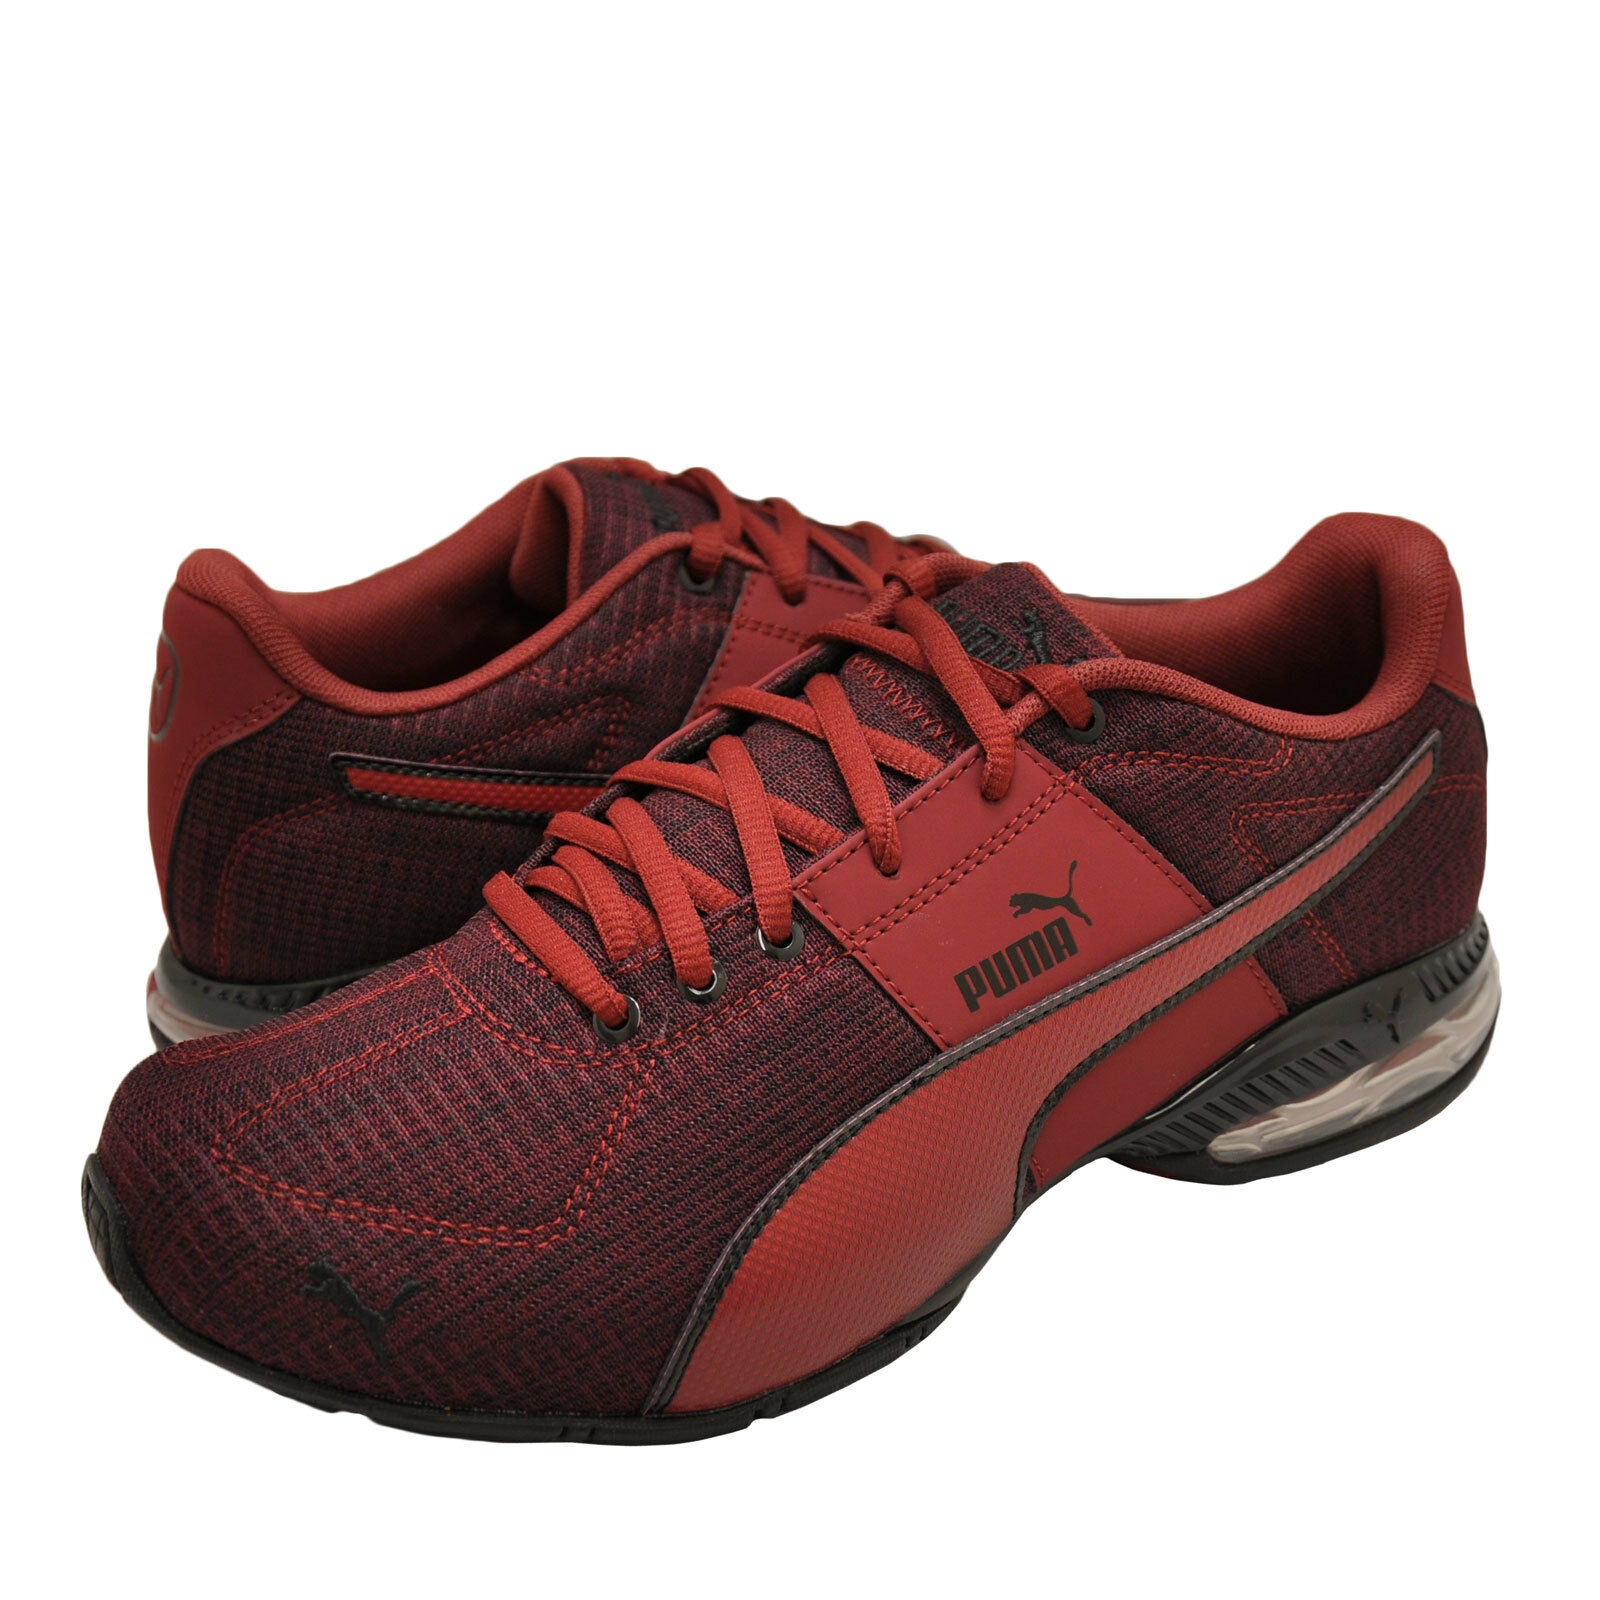 138aed945ad Men s shoes PUMA CELL SURIN 2 HEATHER Athletic Sneakers ...